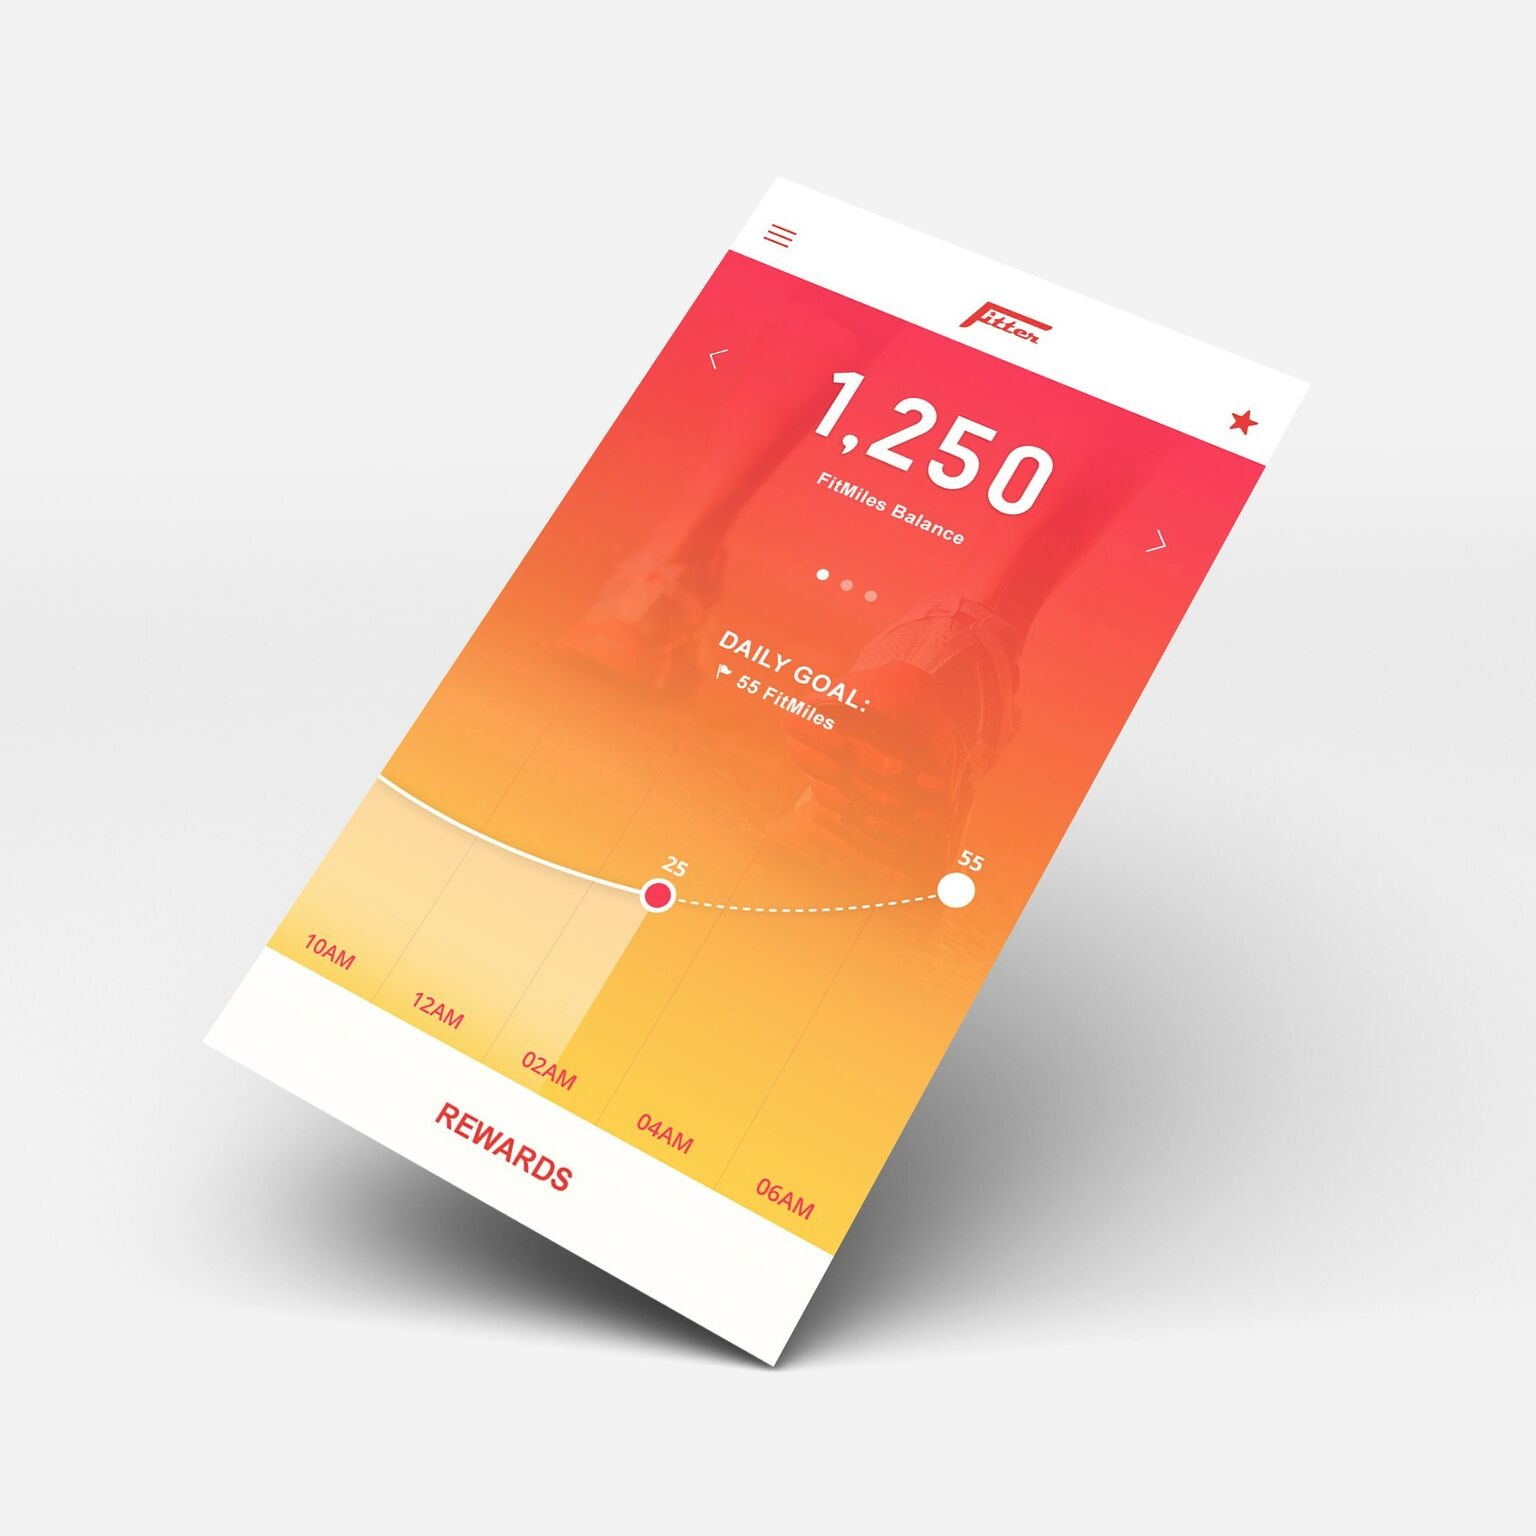 FitMiles by Fitter app UI design